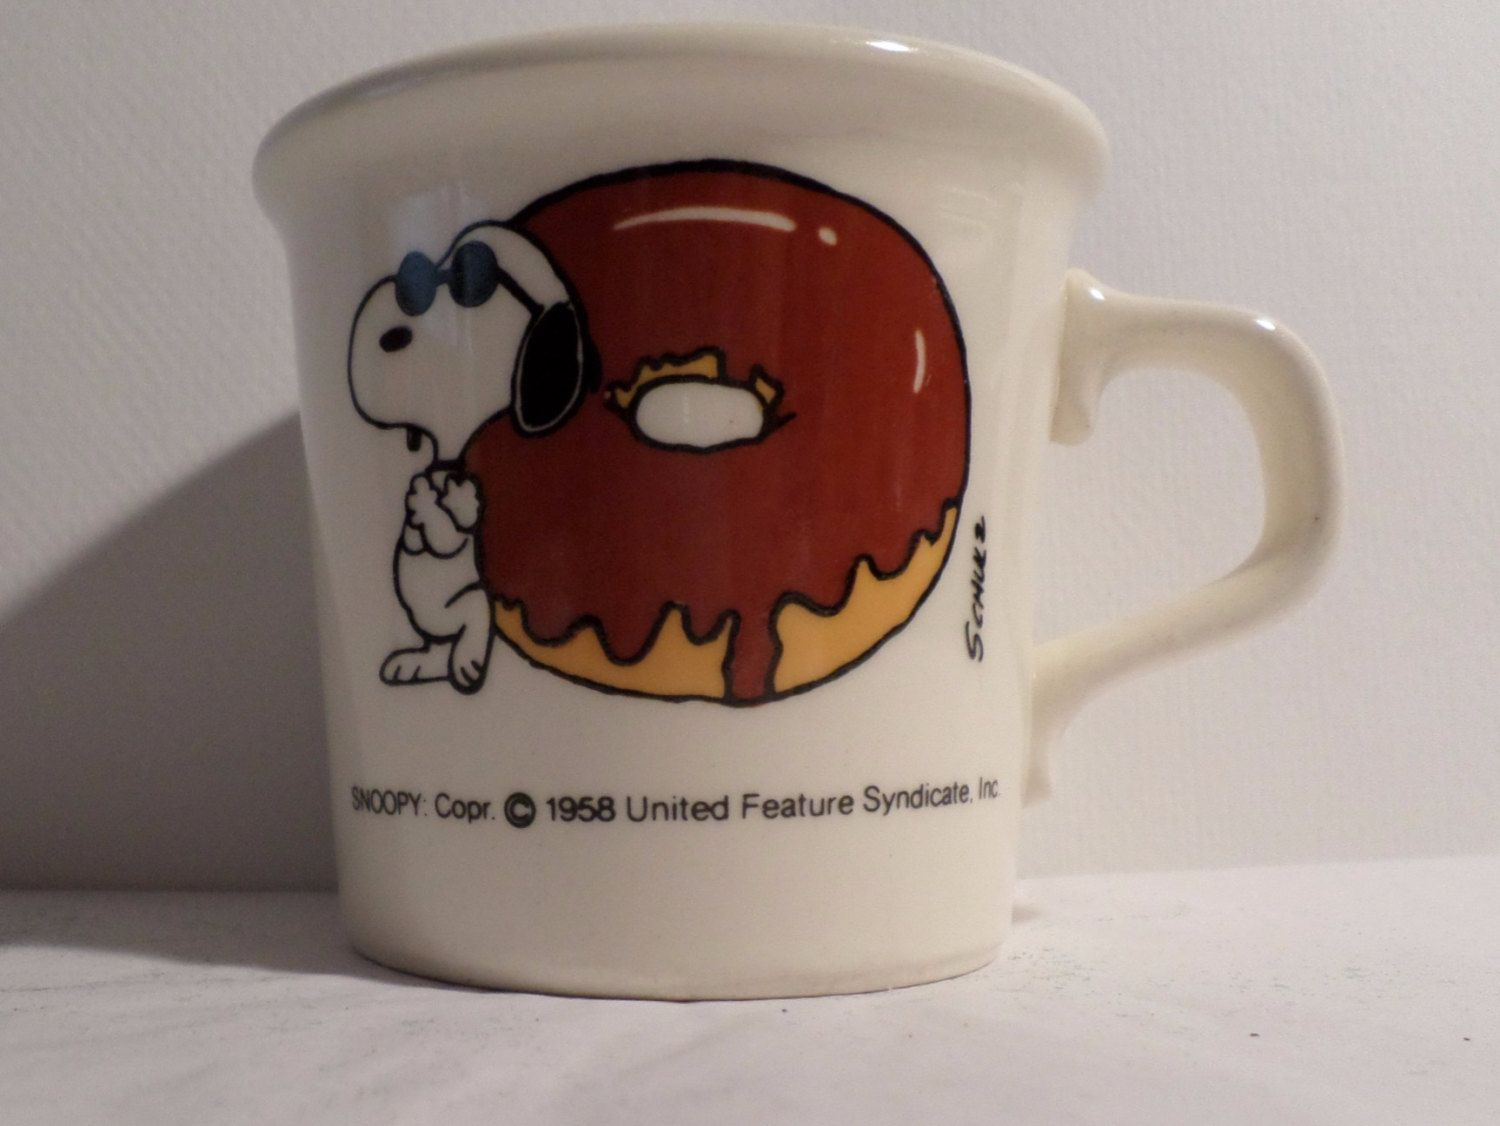 Peanuts Mug, Snoopy, Joe Cool, With A Donut, Vintage 1958, TAYLOR INTERNATIONAL, Coffee Cup, Coffee mug, Snoopy mug, antique, old, Coffee by DeliciasCastle on Etsy